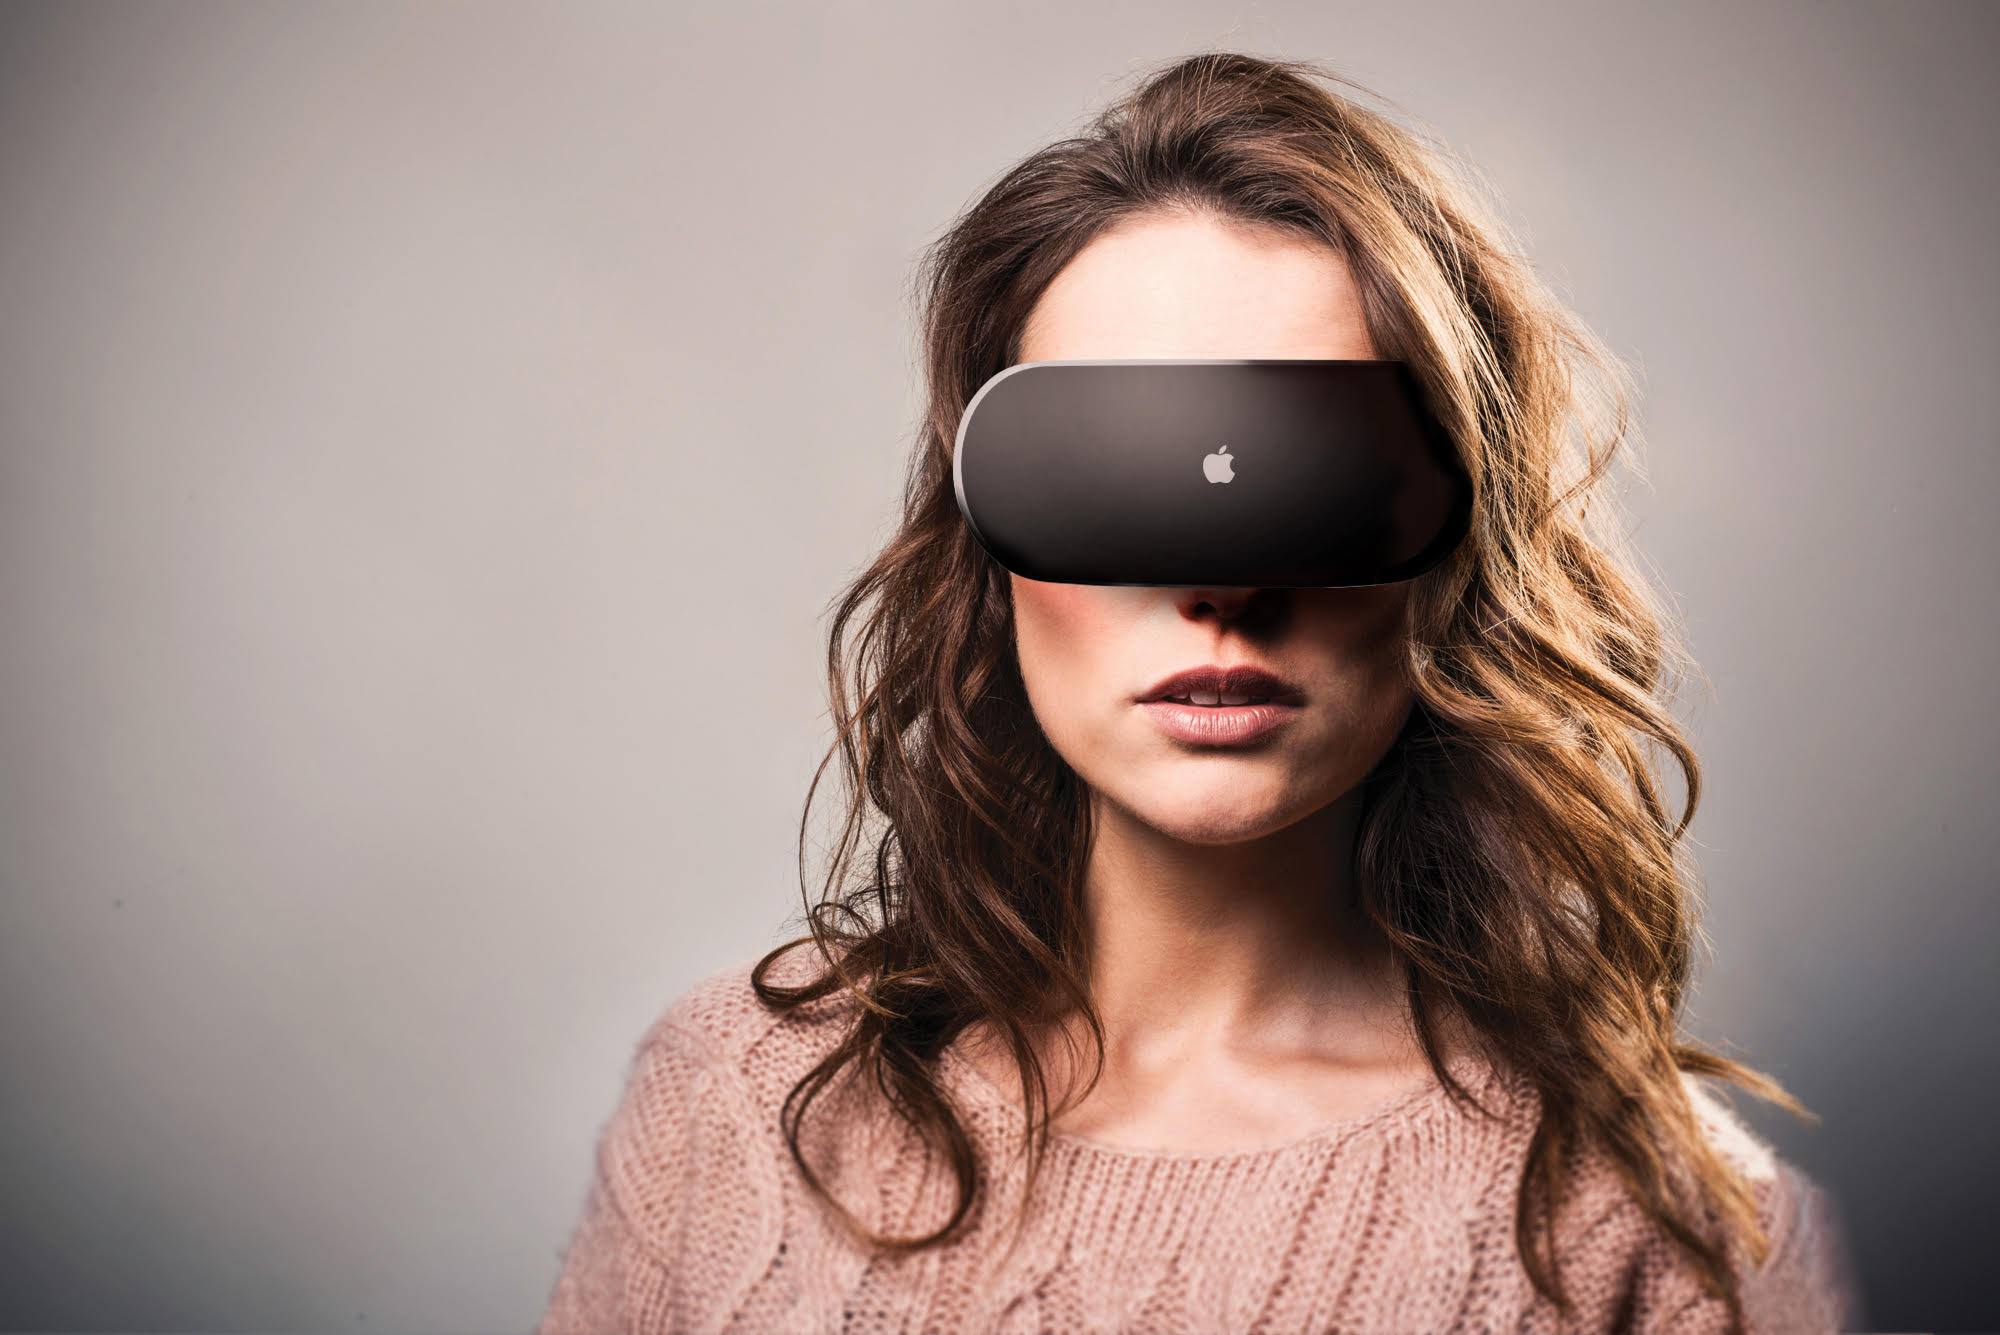 apple mixed-reality headset design